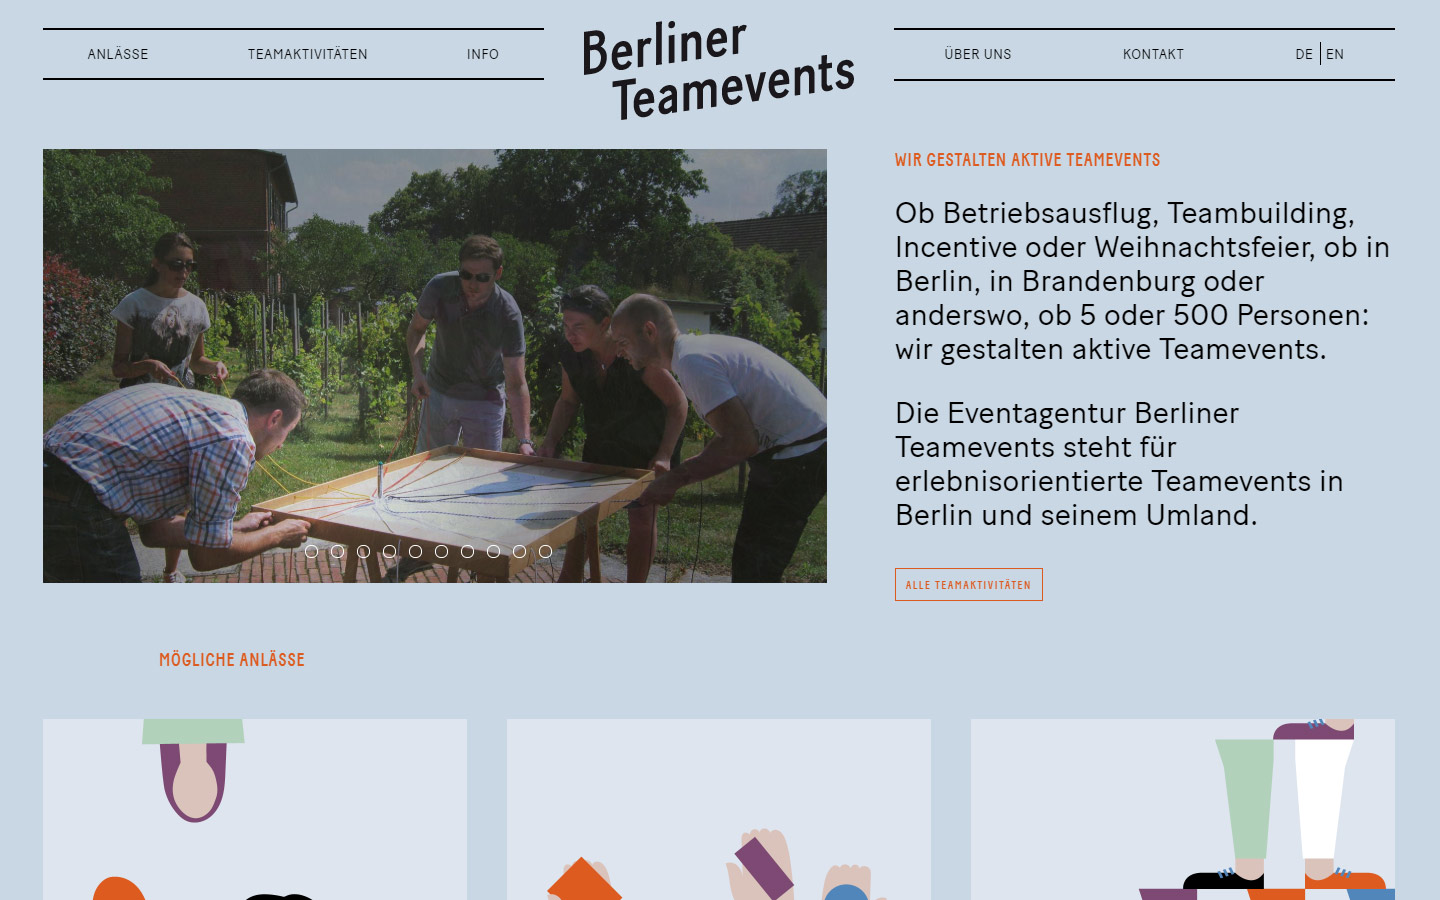 Berliner Teamevents